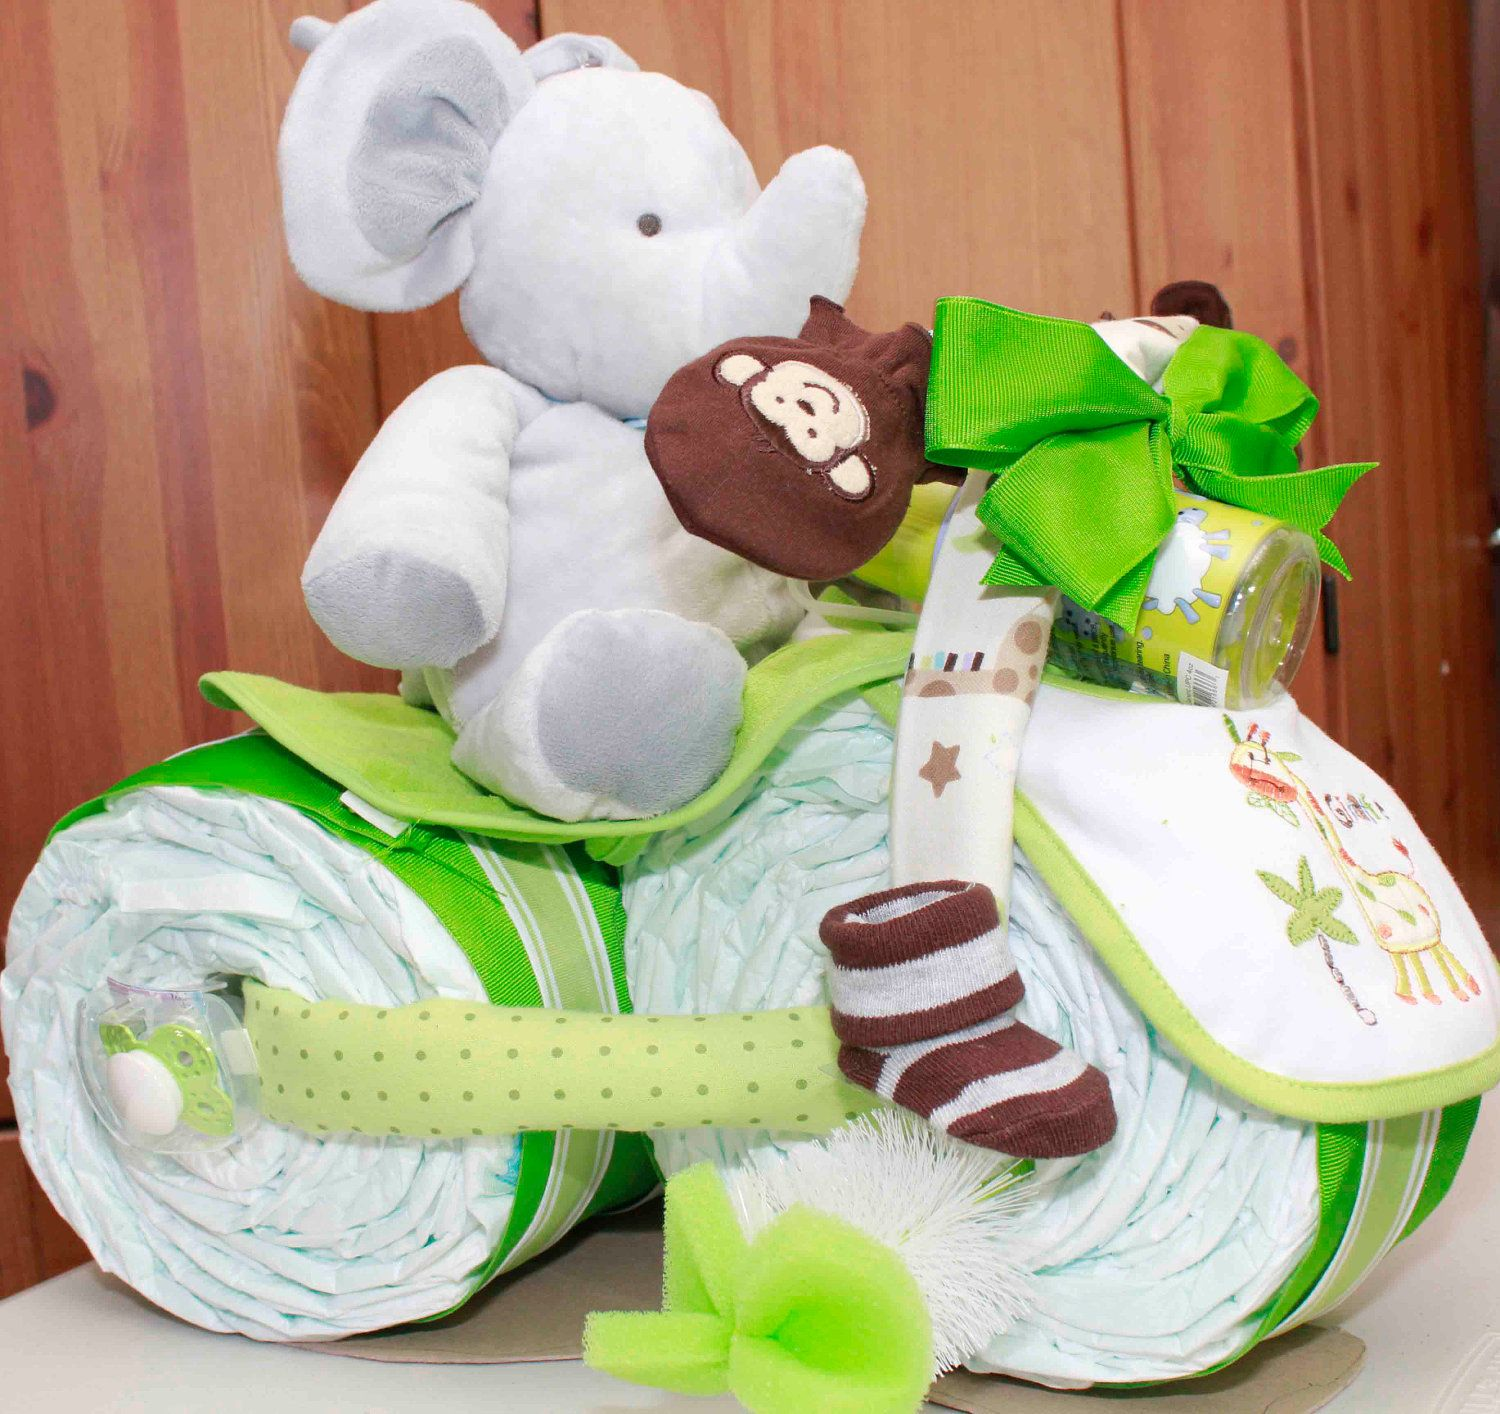 Awesome Gift Loaded Unique Green Safari Jungle Animal Theme Tricycle Gender Neutral Diaper Cake. $98.00, via Etsy.